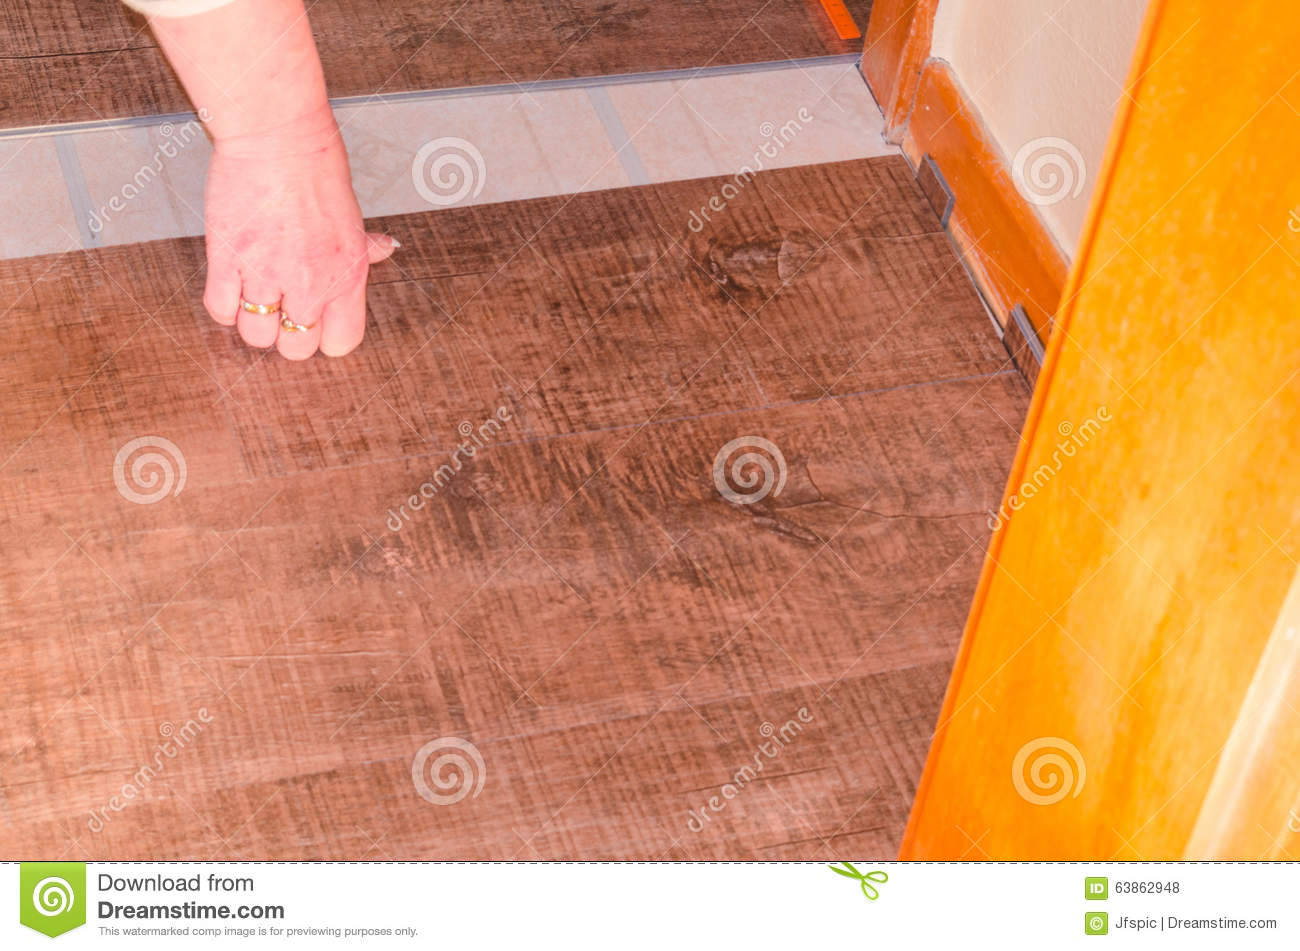 Vinyl laminate floor in the old building stock photo for Laminate floor covering